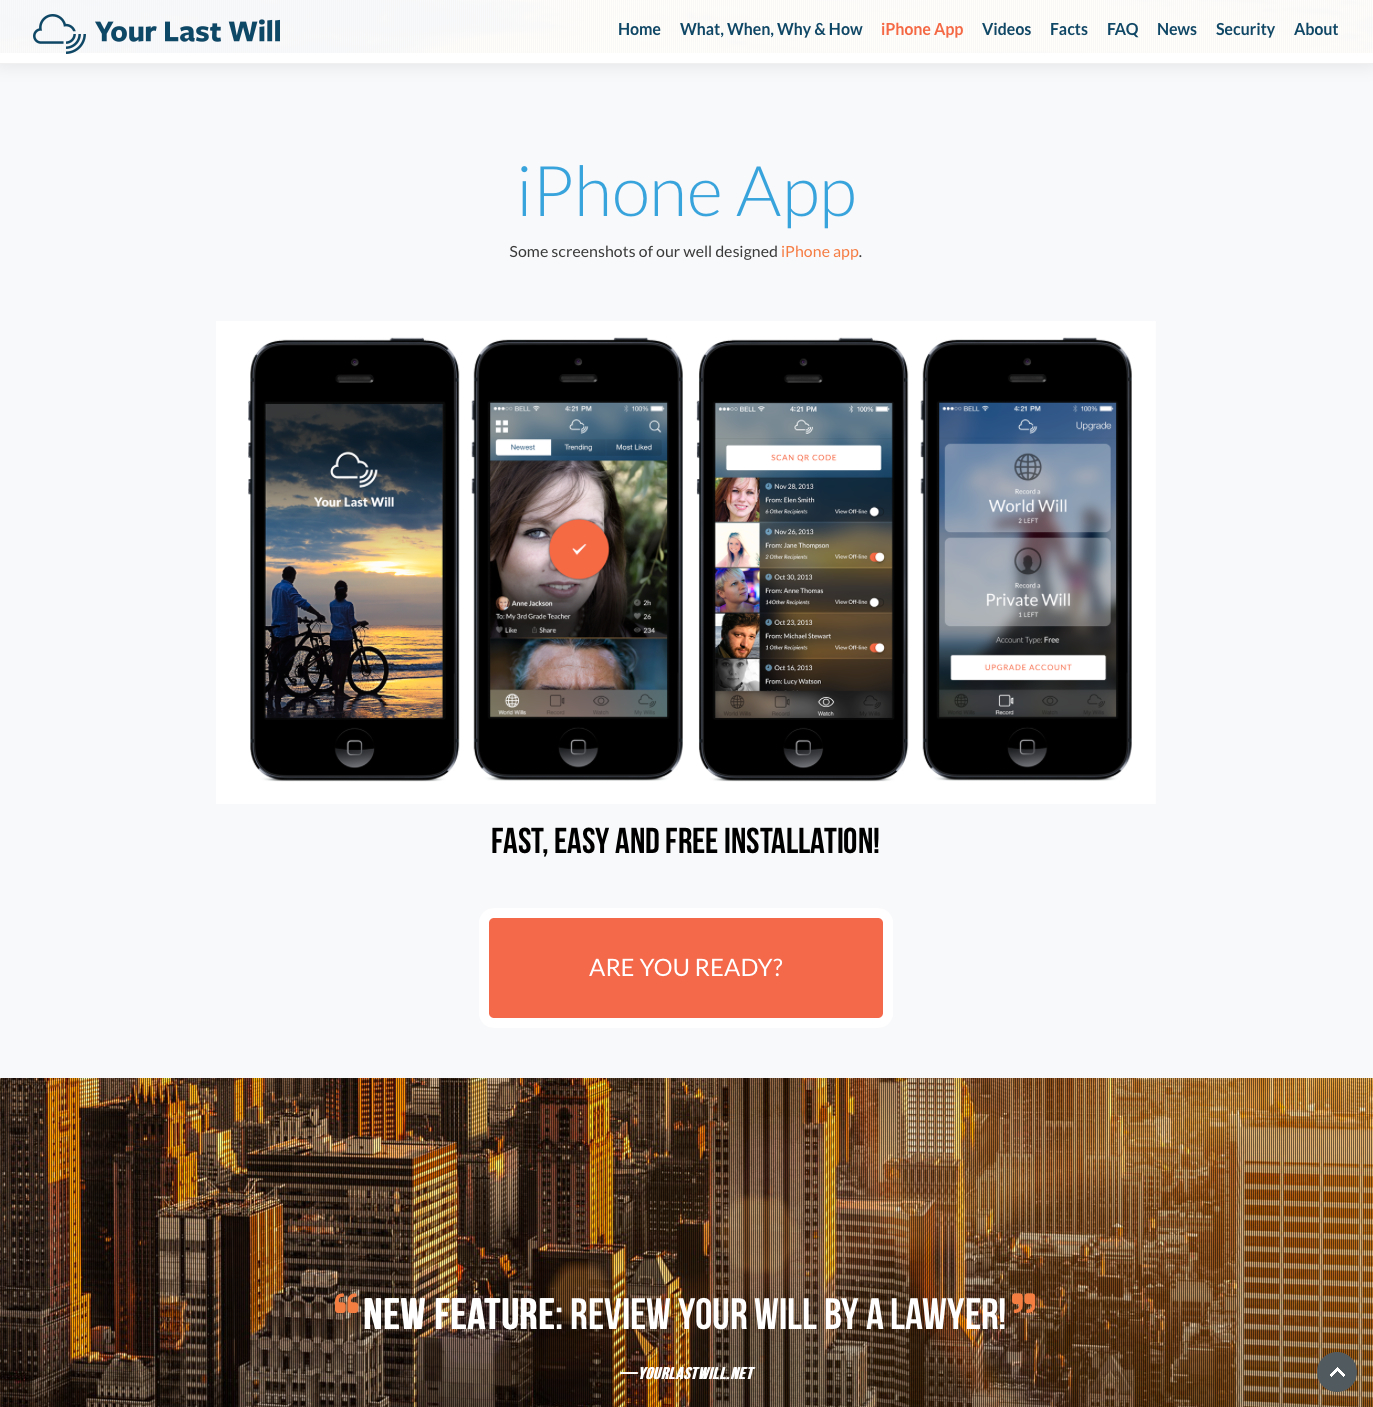 Your Last Will iPhone app